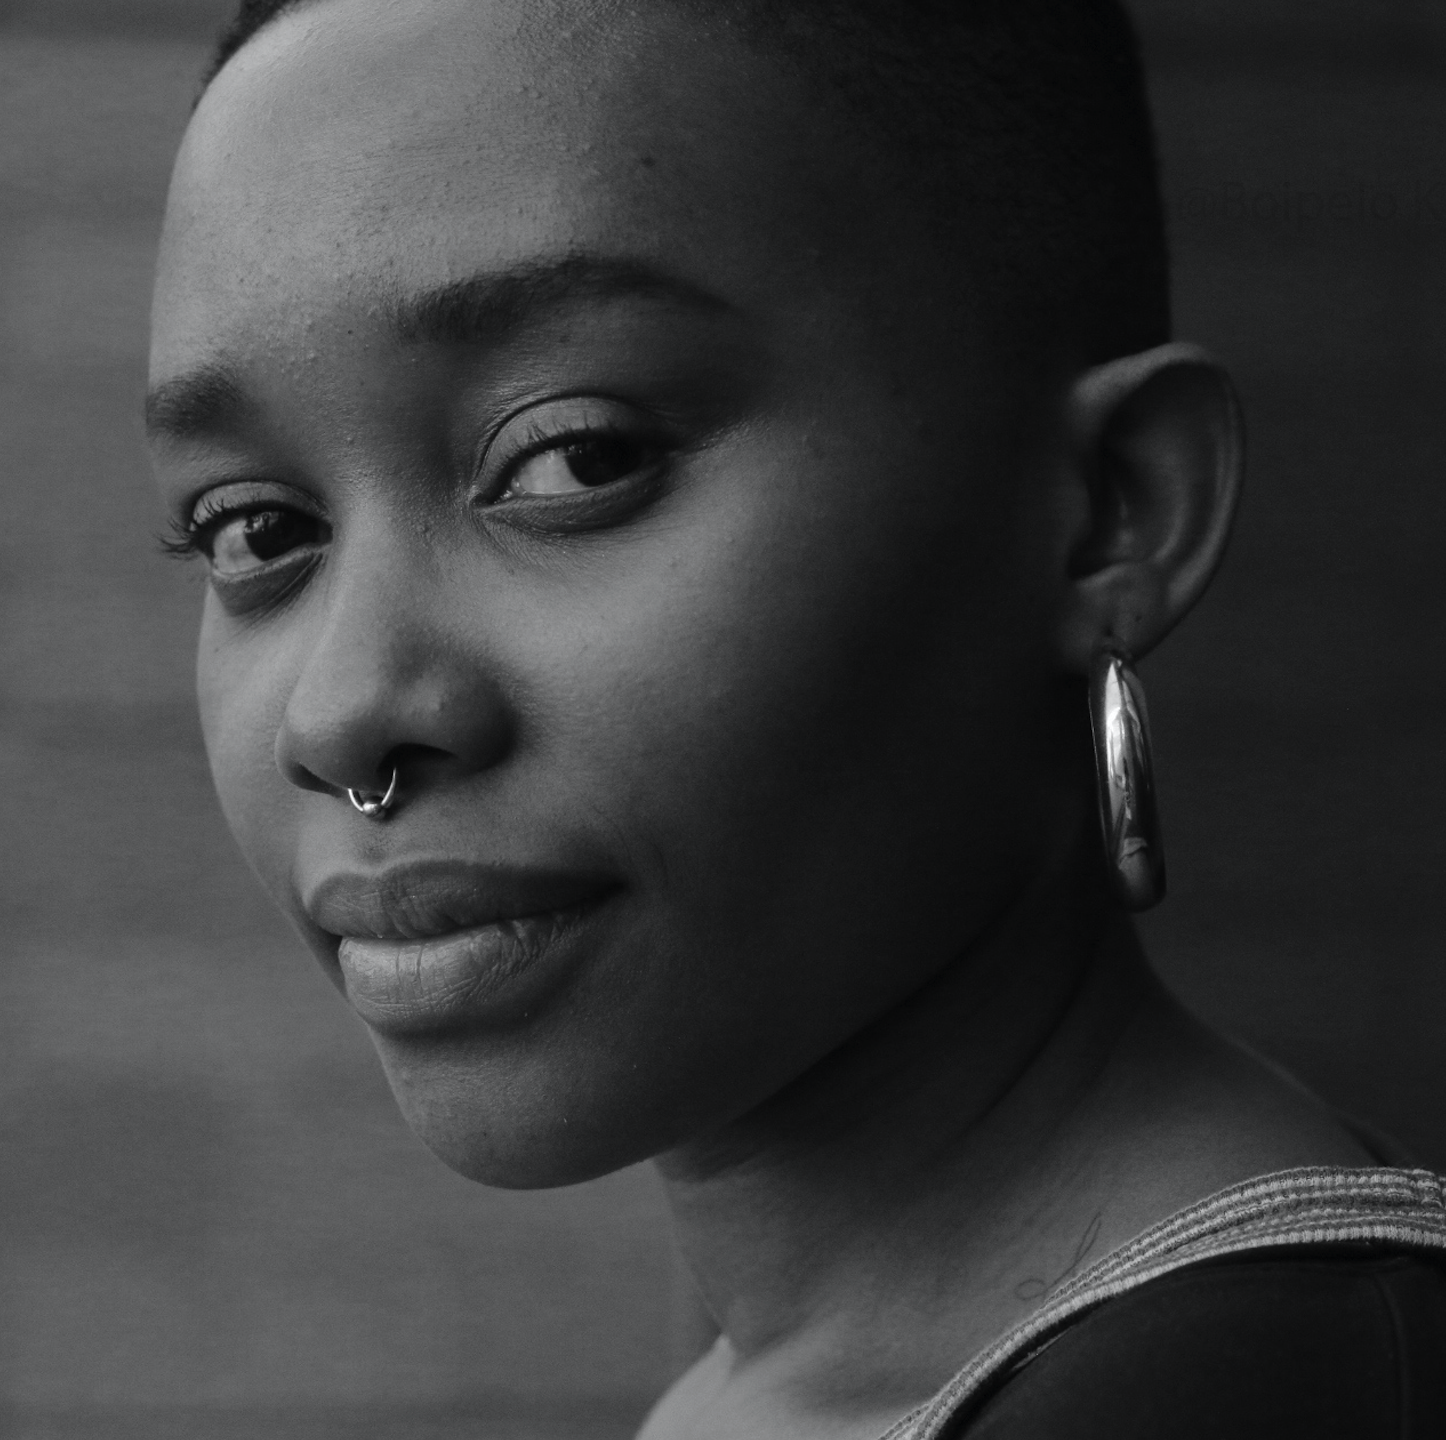 BOIPELO KHUNOU - Photographer and videographer from South Africa capturing lived experiences conceptually, while encouraging her subjects to recognize their personal creative power in the process.